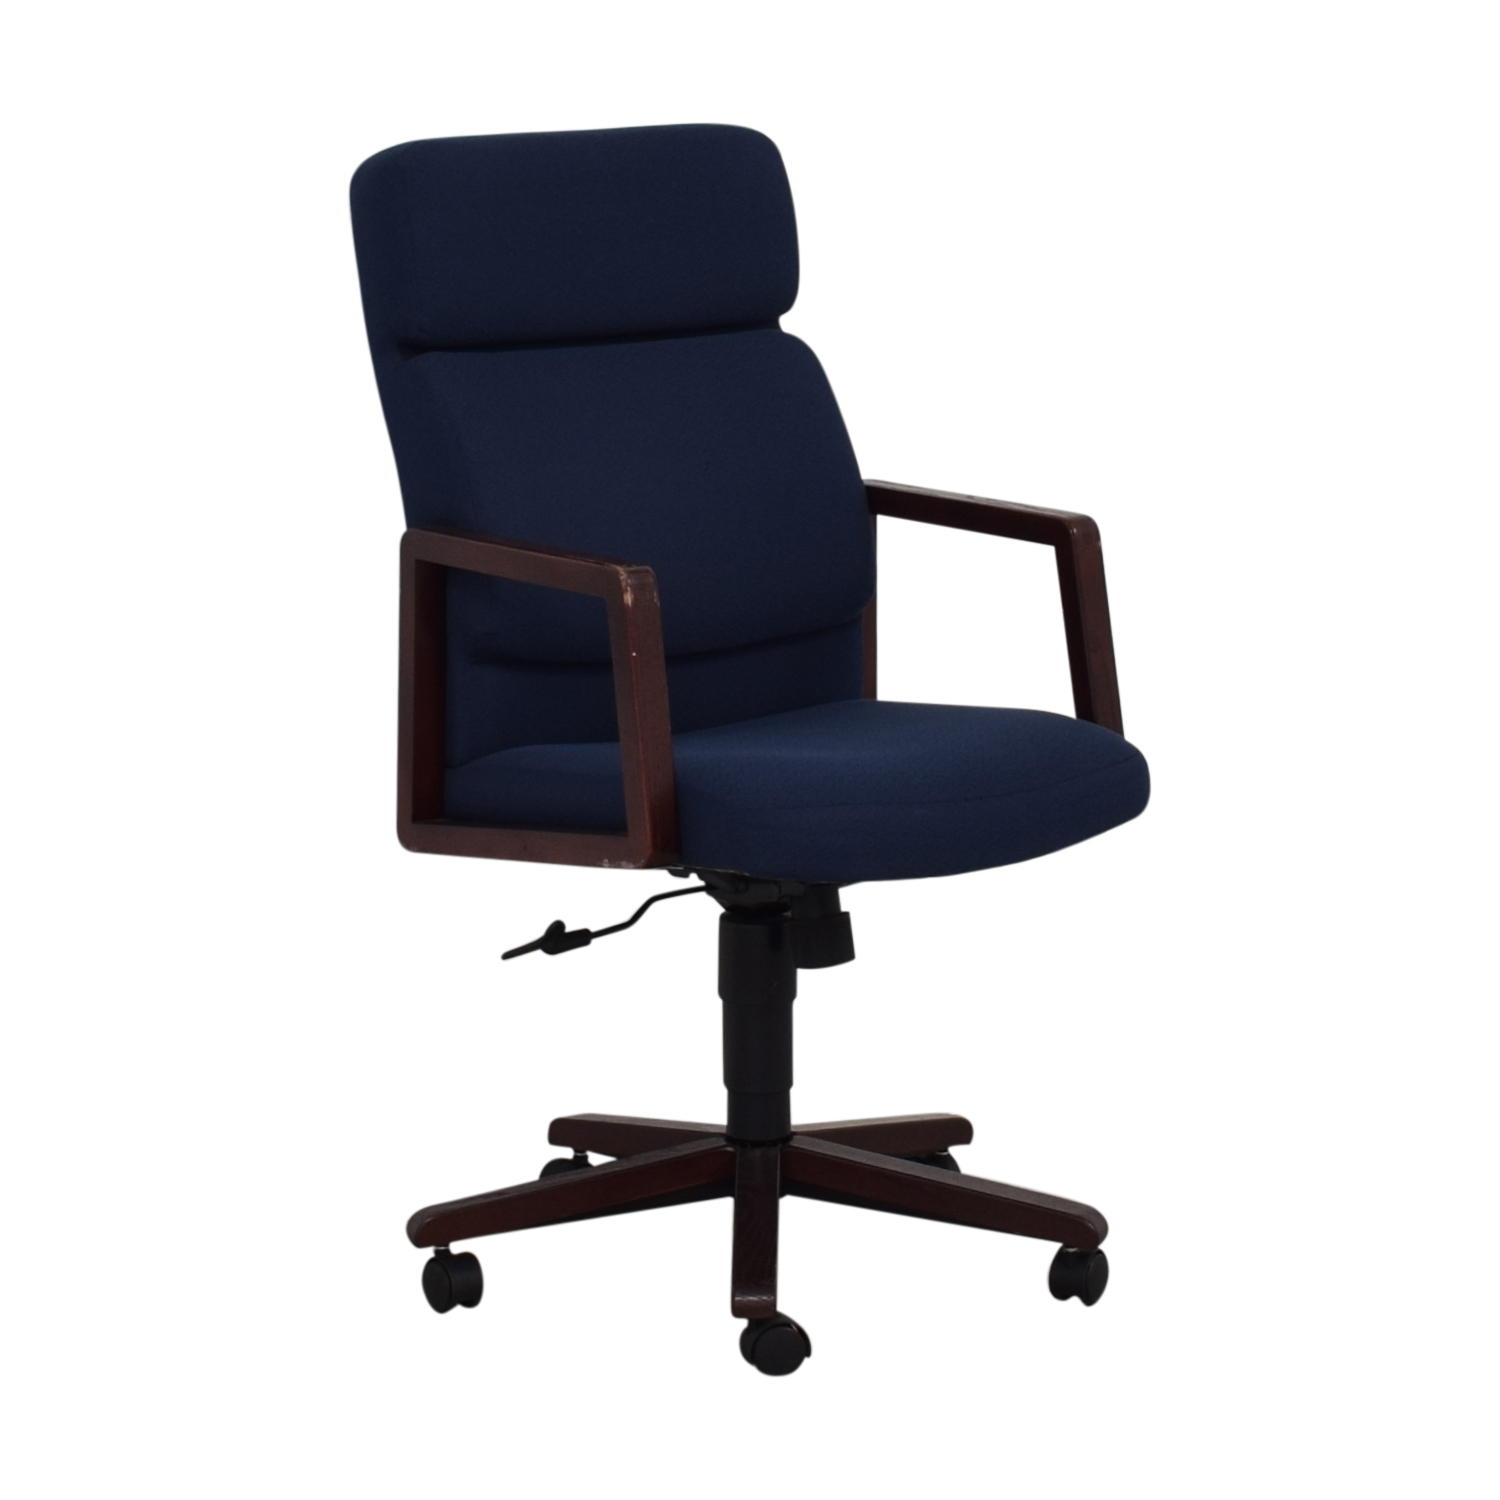 Blue Office Chair on Castors / Chairs